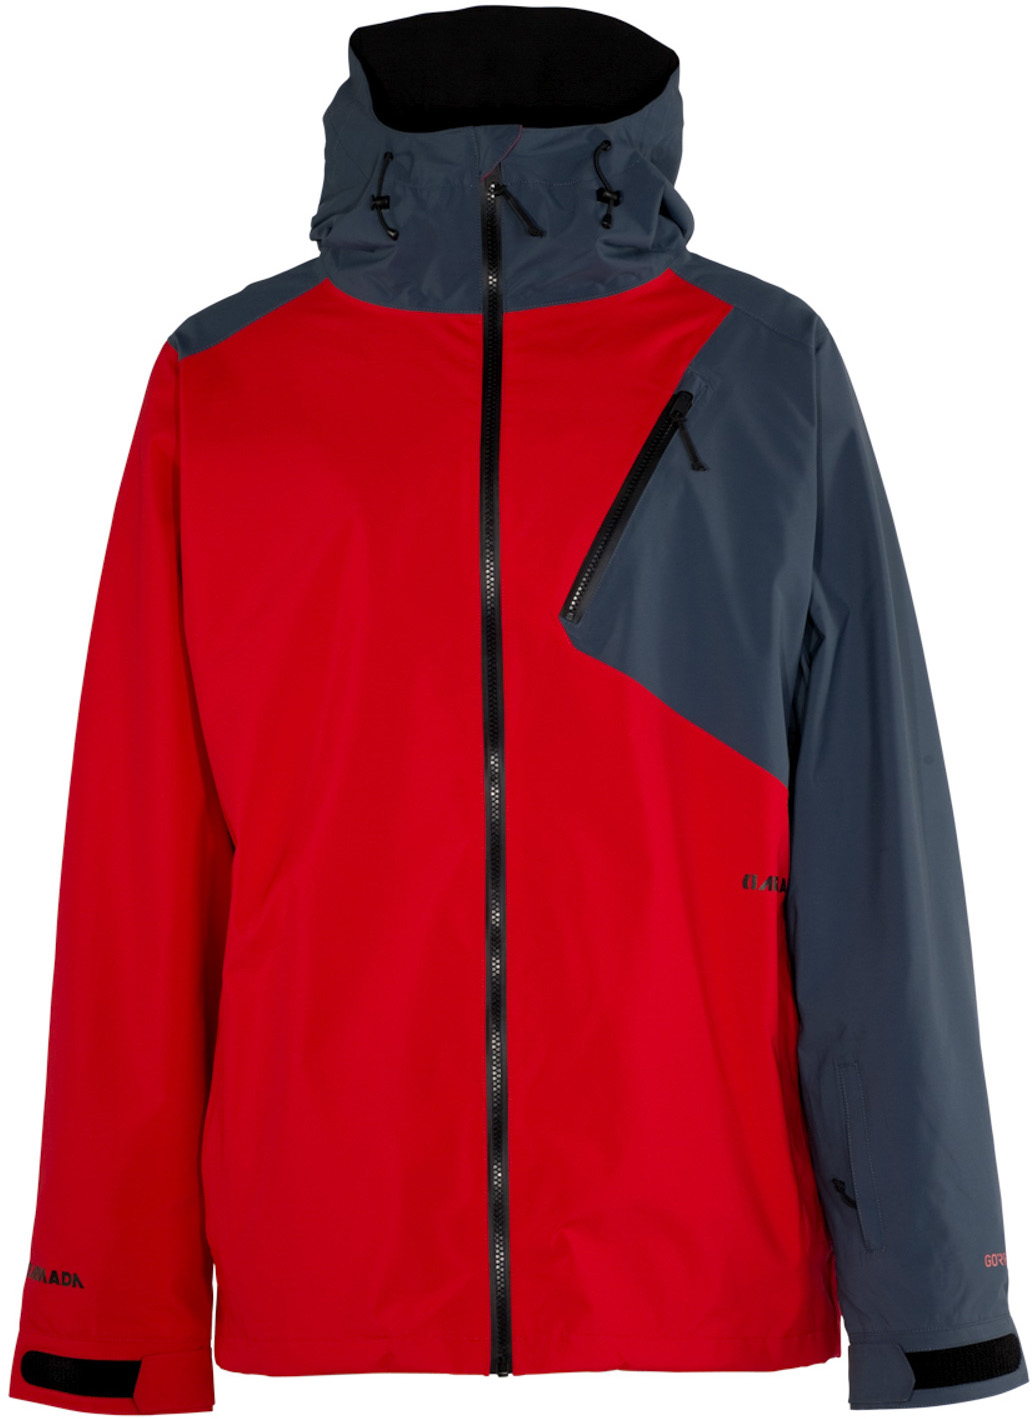 bunda CHAPTER GORE-TEX JACKET red